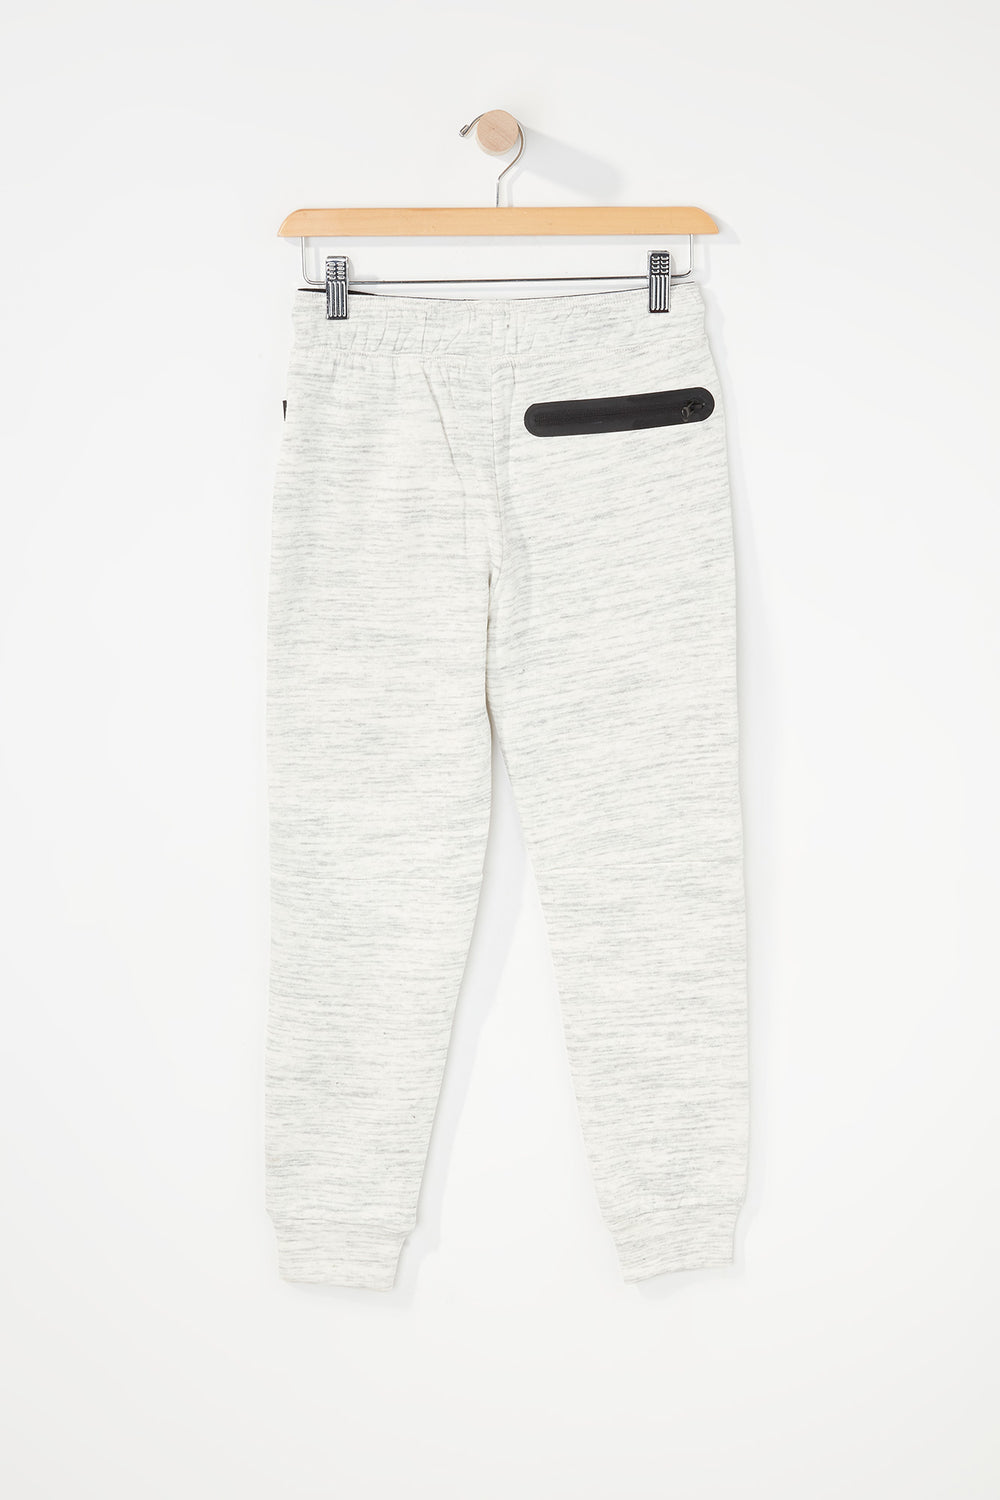 West49 Boys Zip Jogger Oatmeal